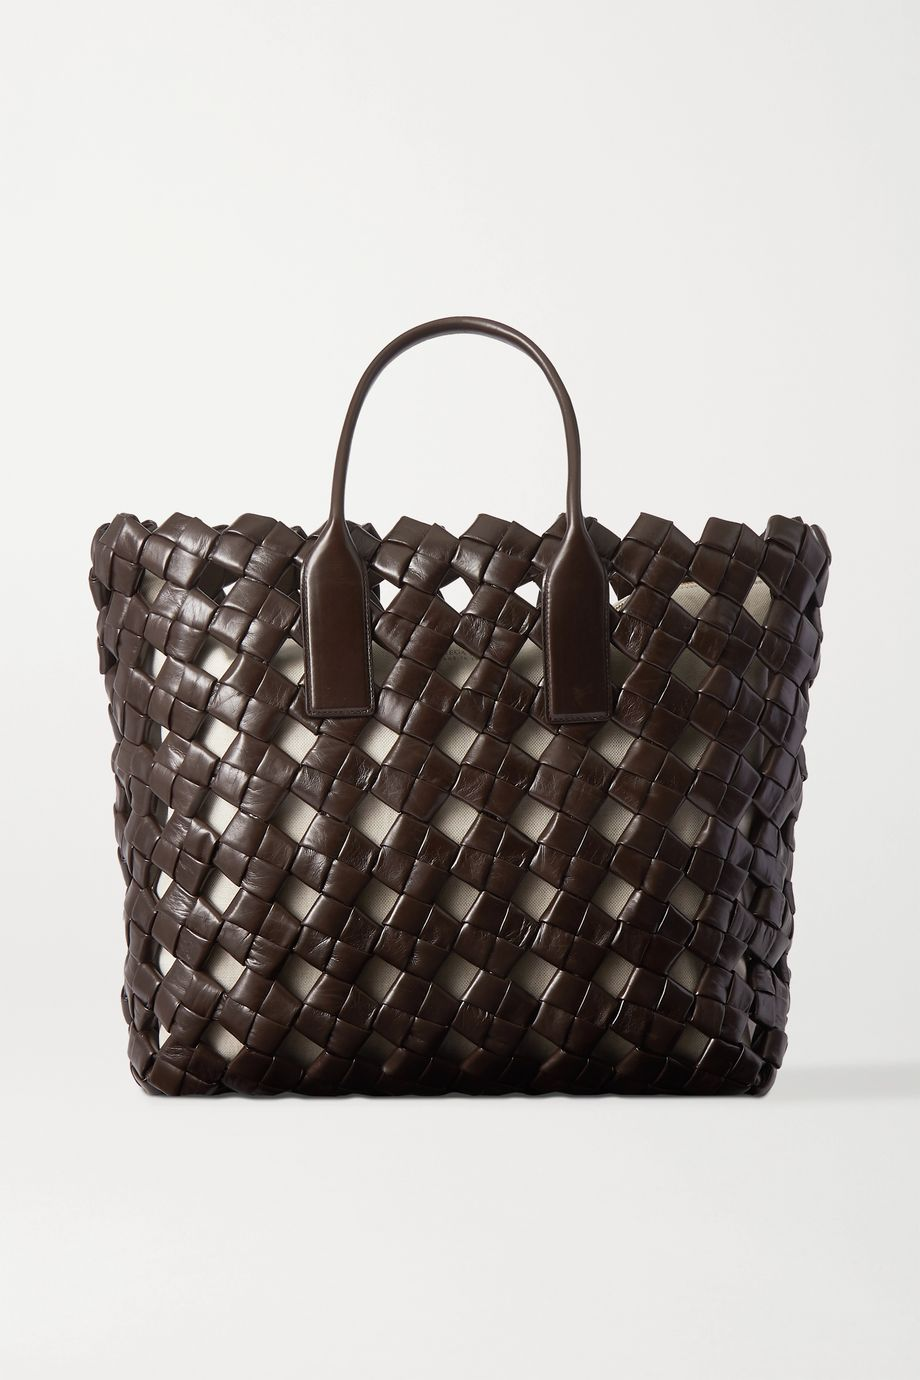 Bottega Veneta Woven leather tote